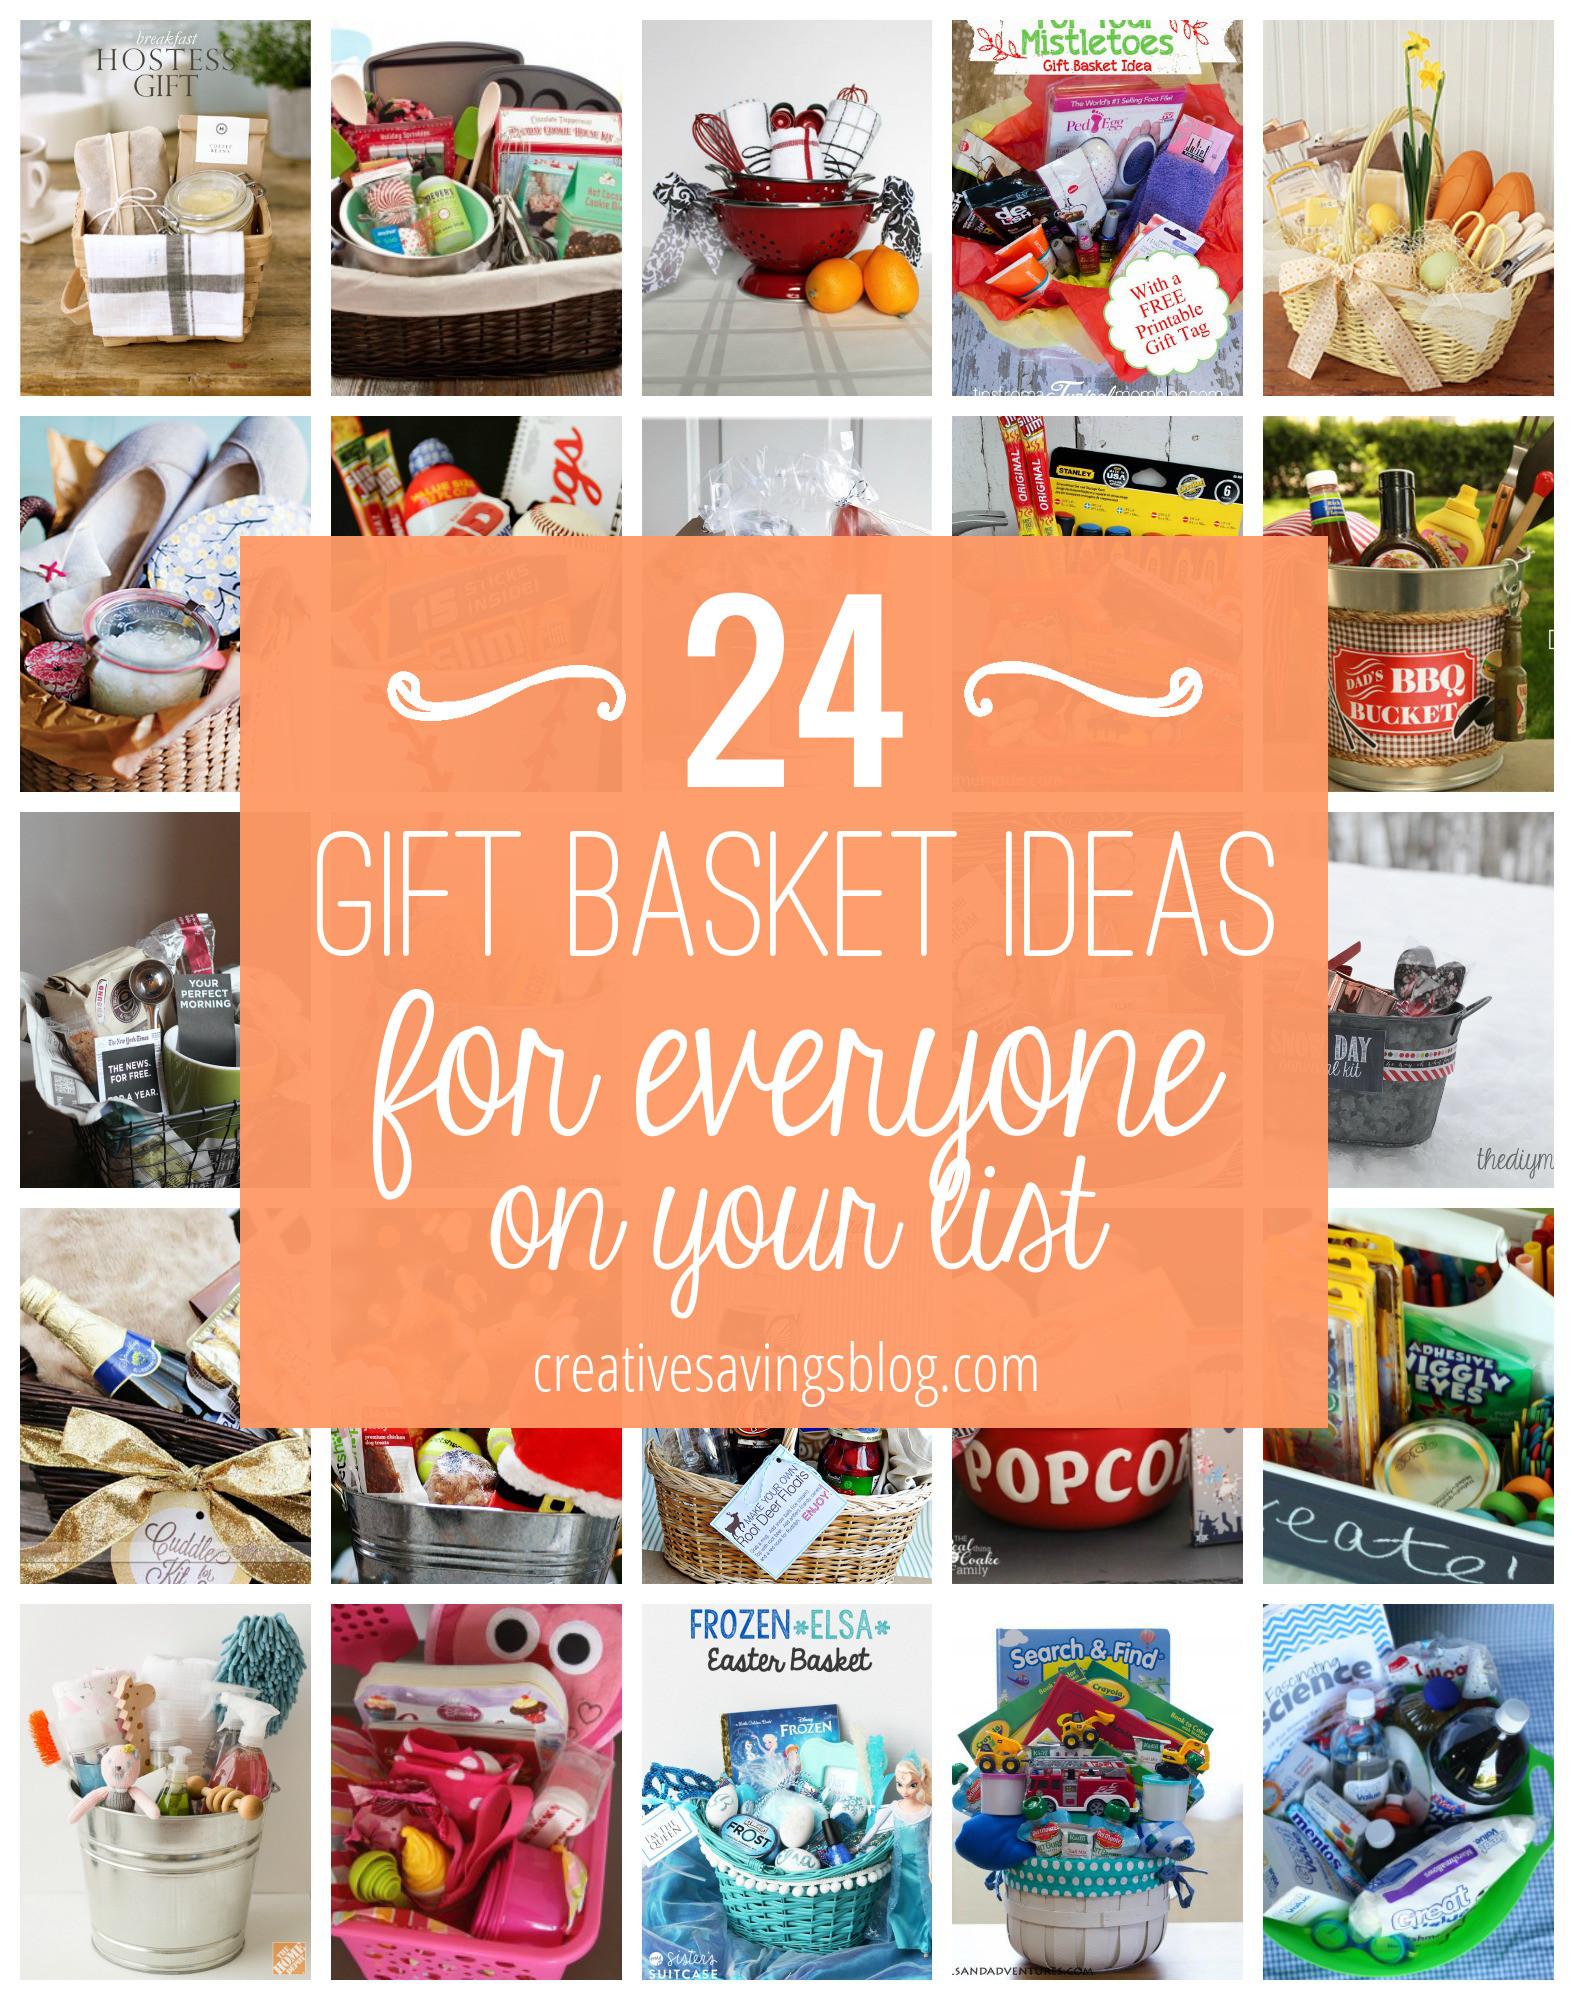 Best ideas about Gift Basket Theme Ideas . Save or Pin DIY Gift Basket Ideas for Everyone on Your List Now.